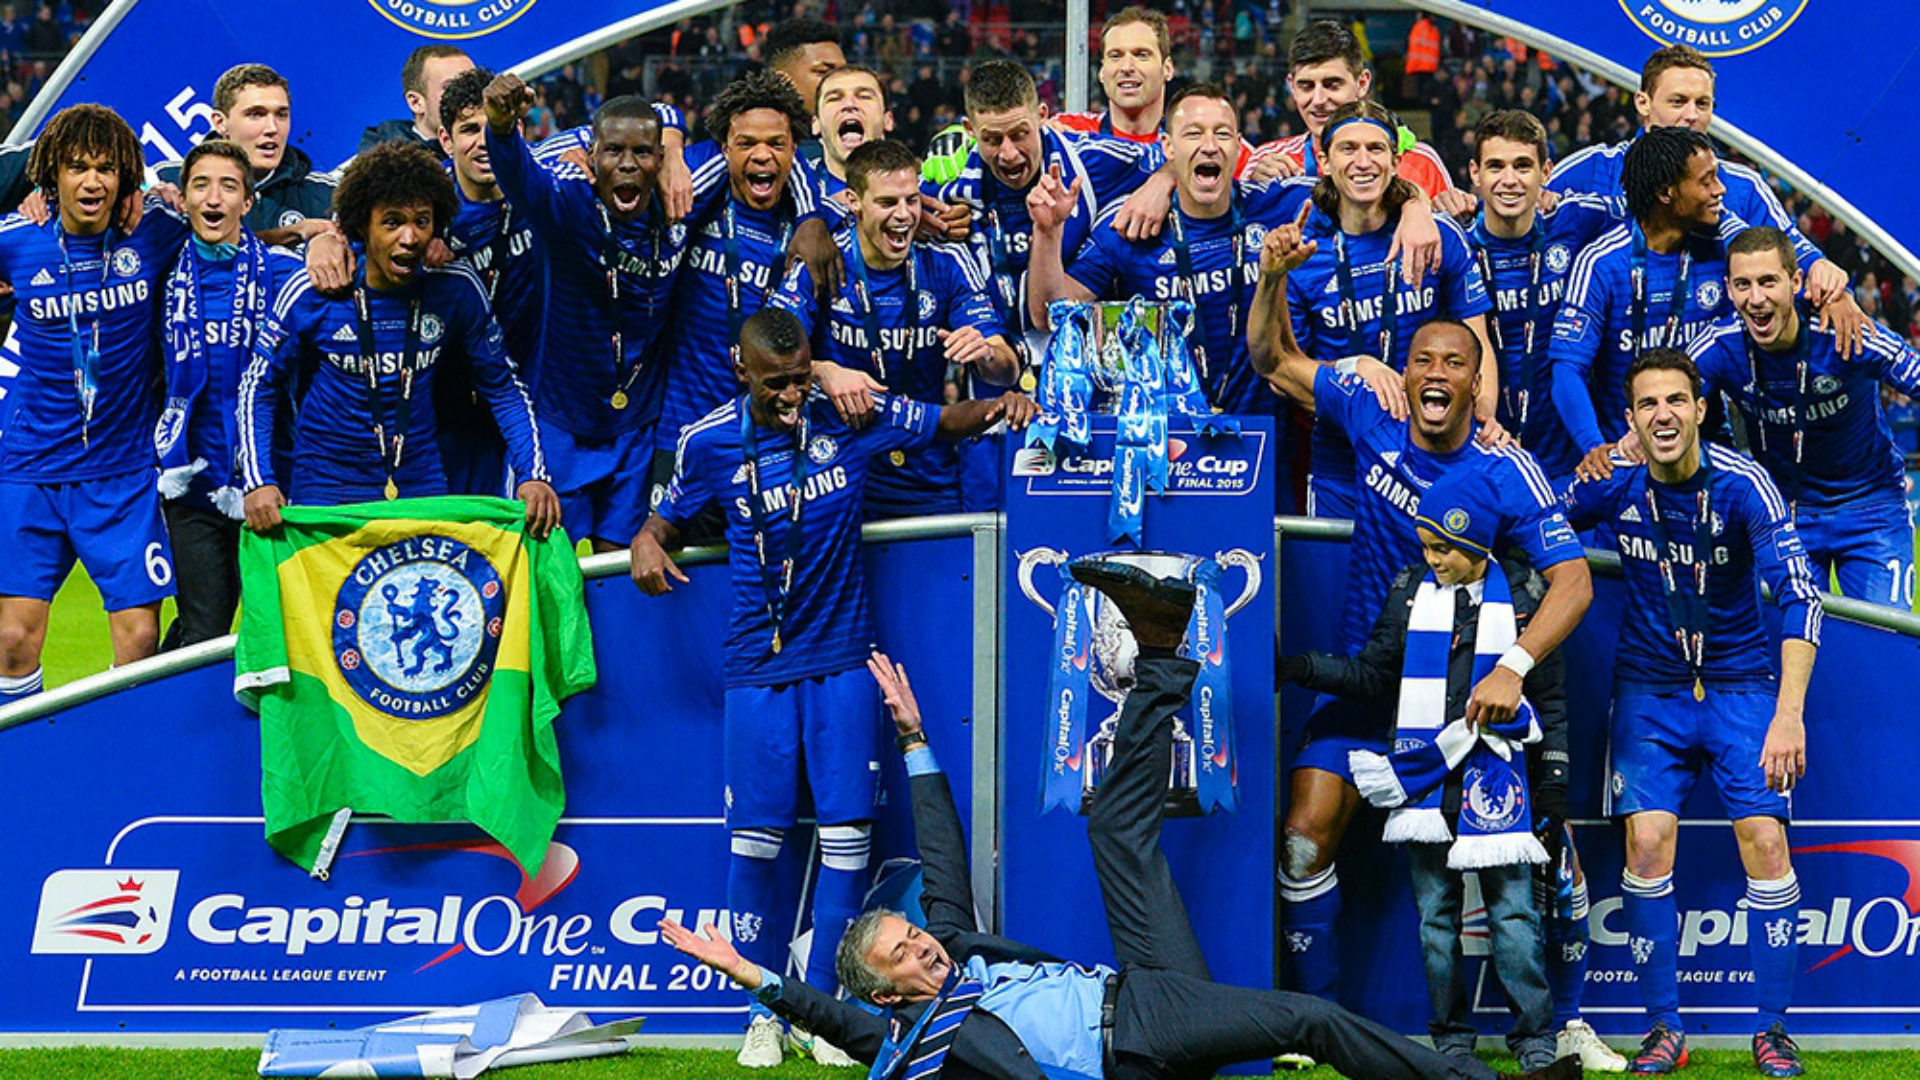 1 Can Chelsea Retain The League